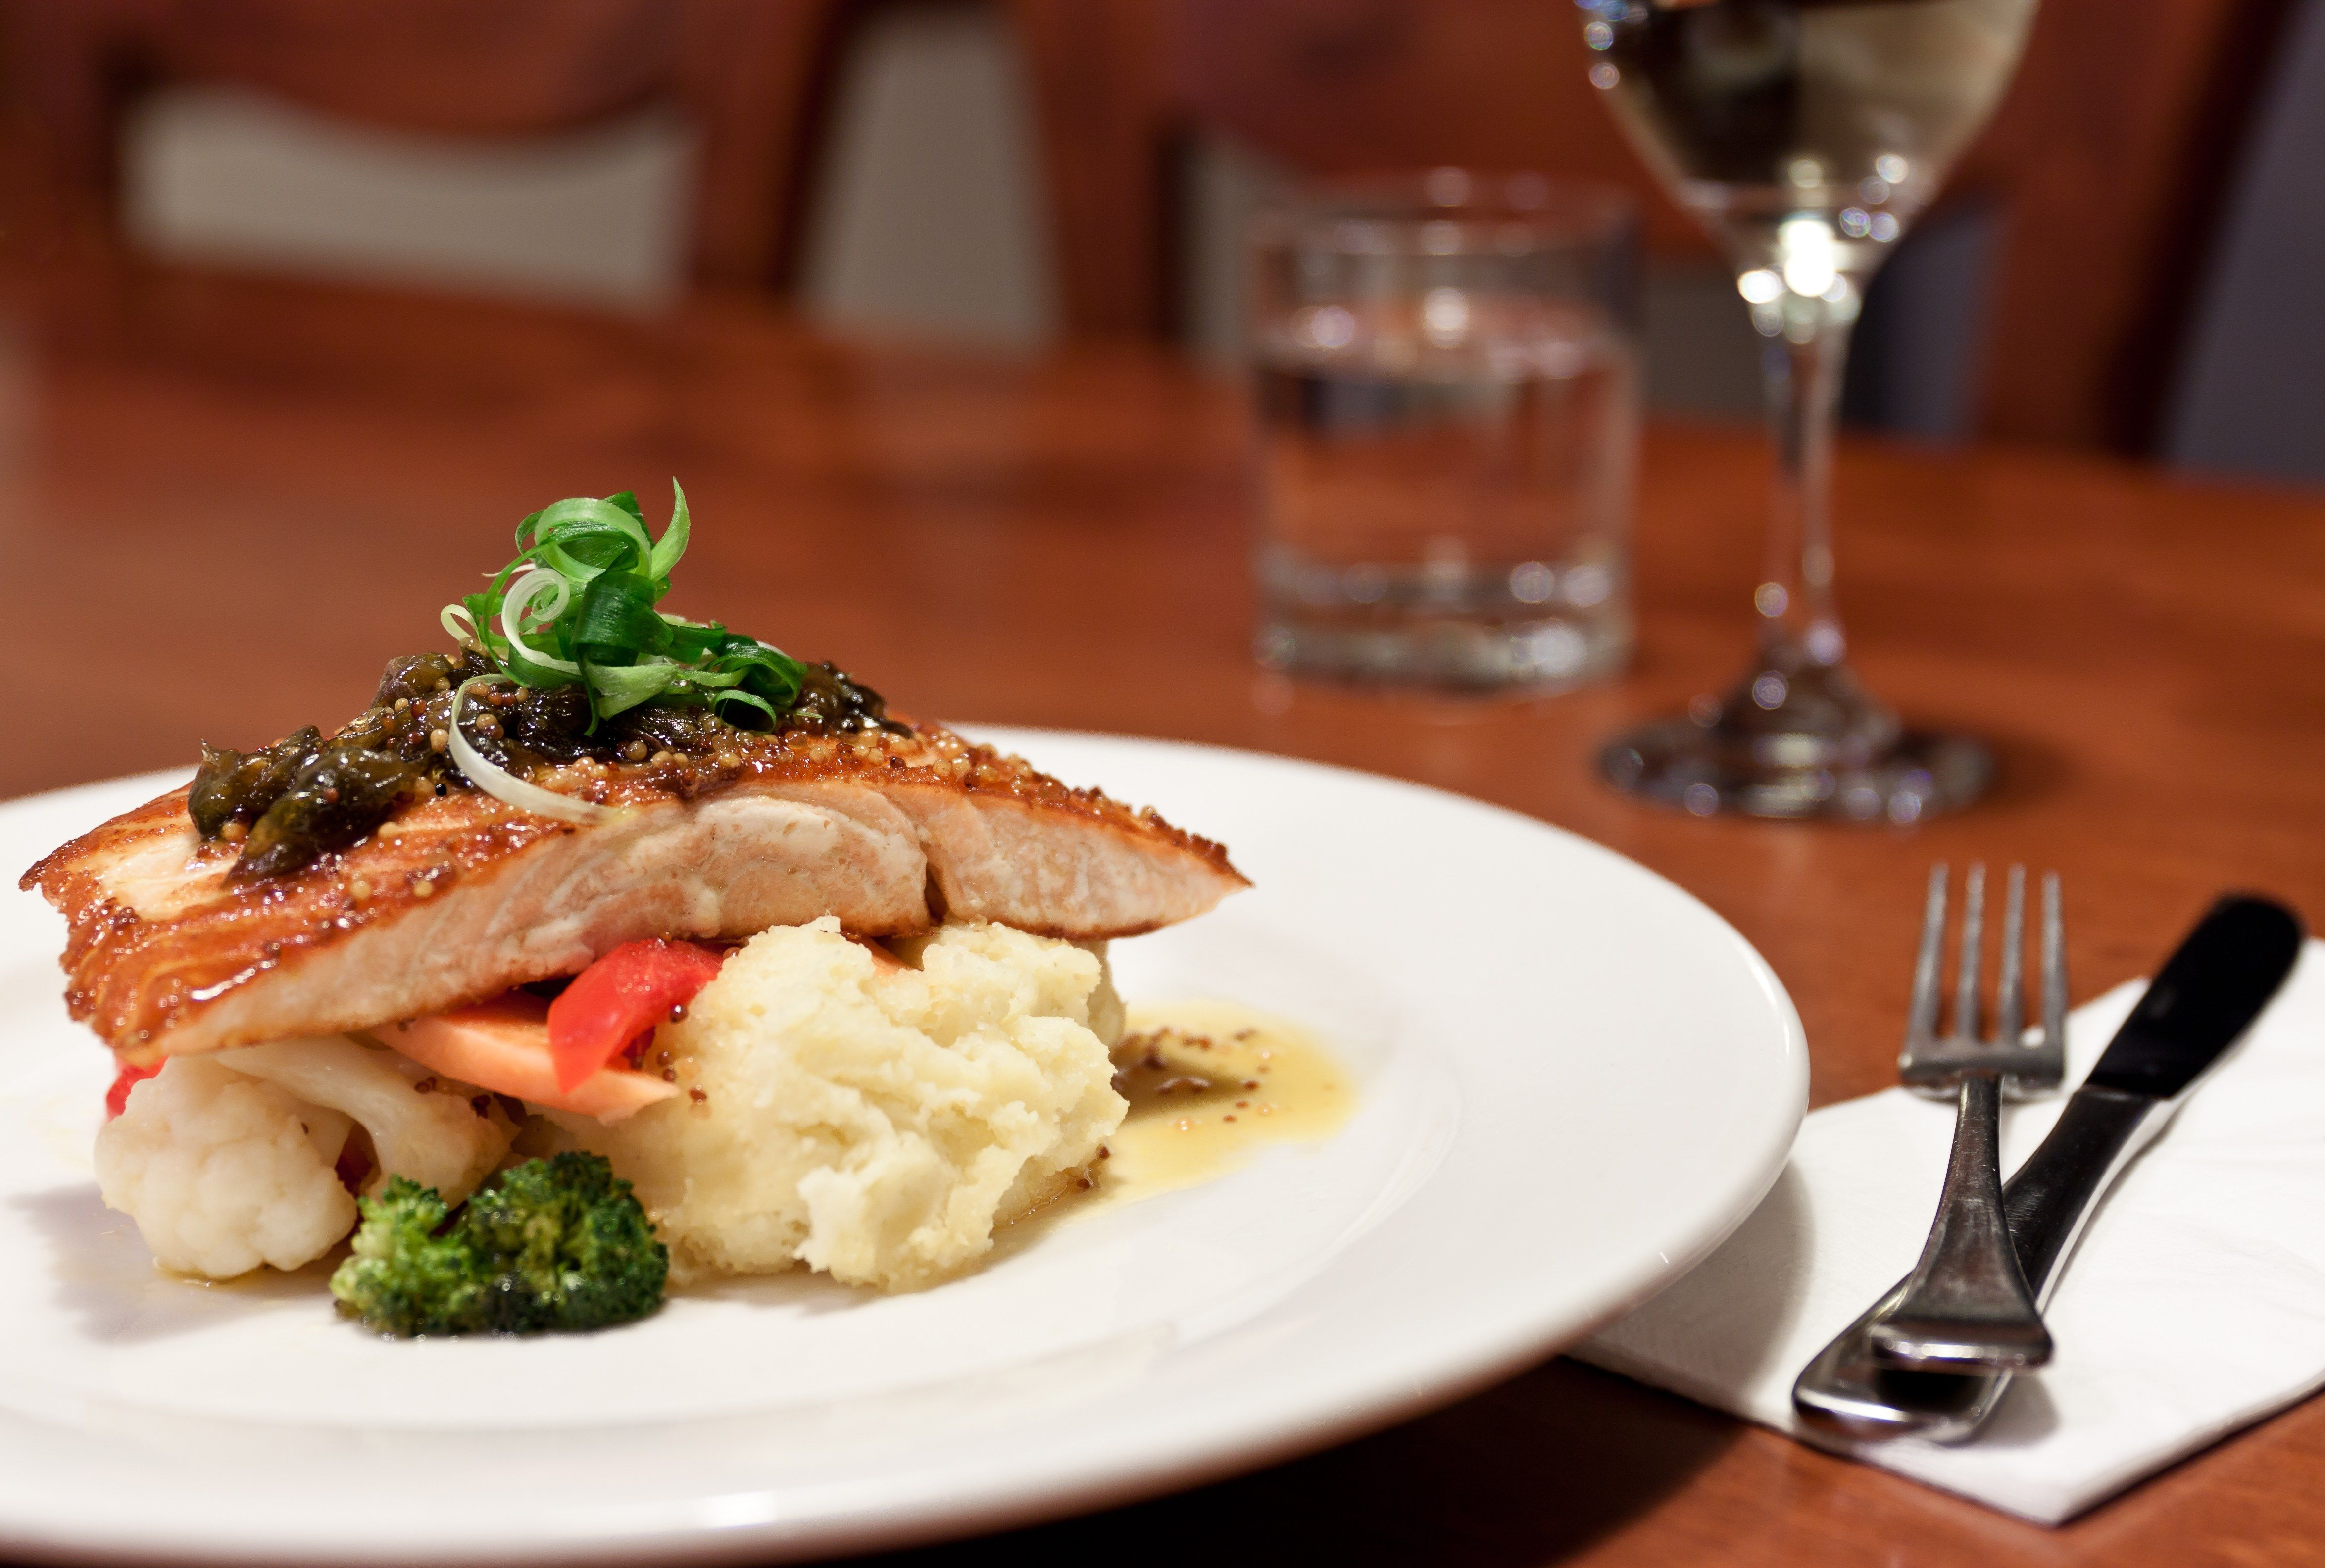 Salmon dinner at vitas in griffith more riverina food wine beer salmon dinner at vitas in griffith more riverina food wine beer produce forumfinder Gallery